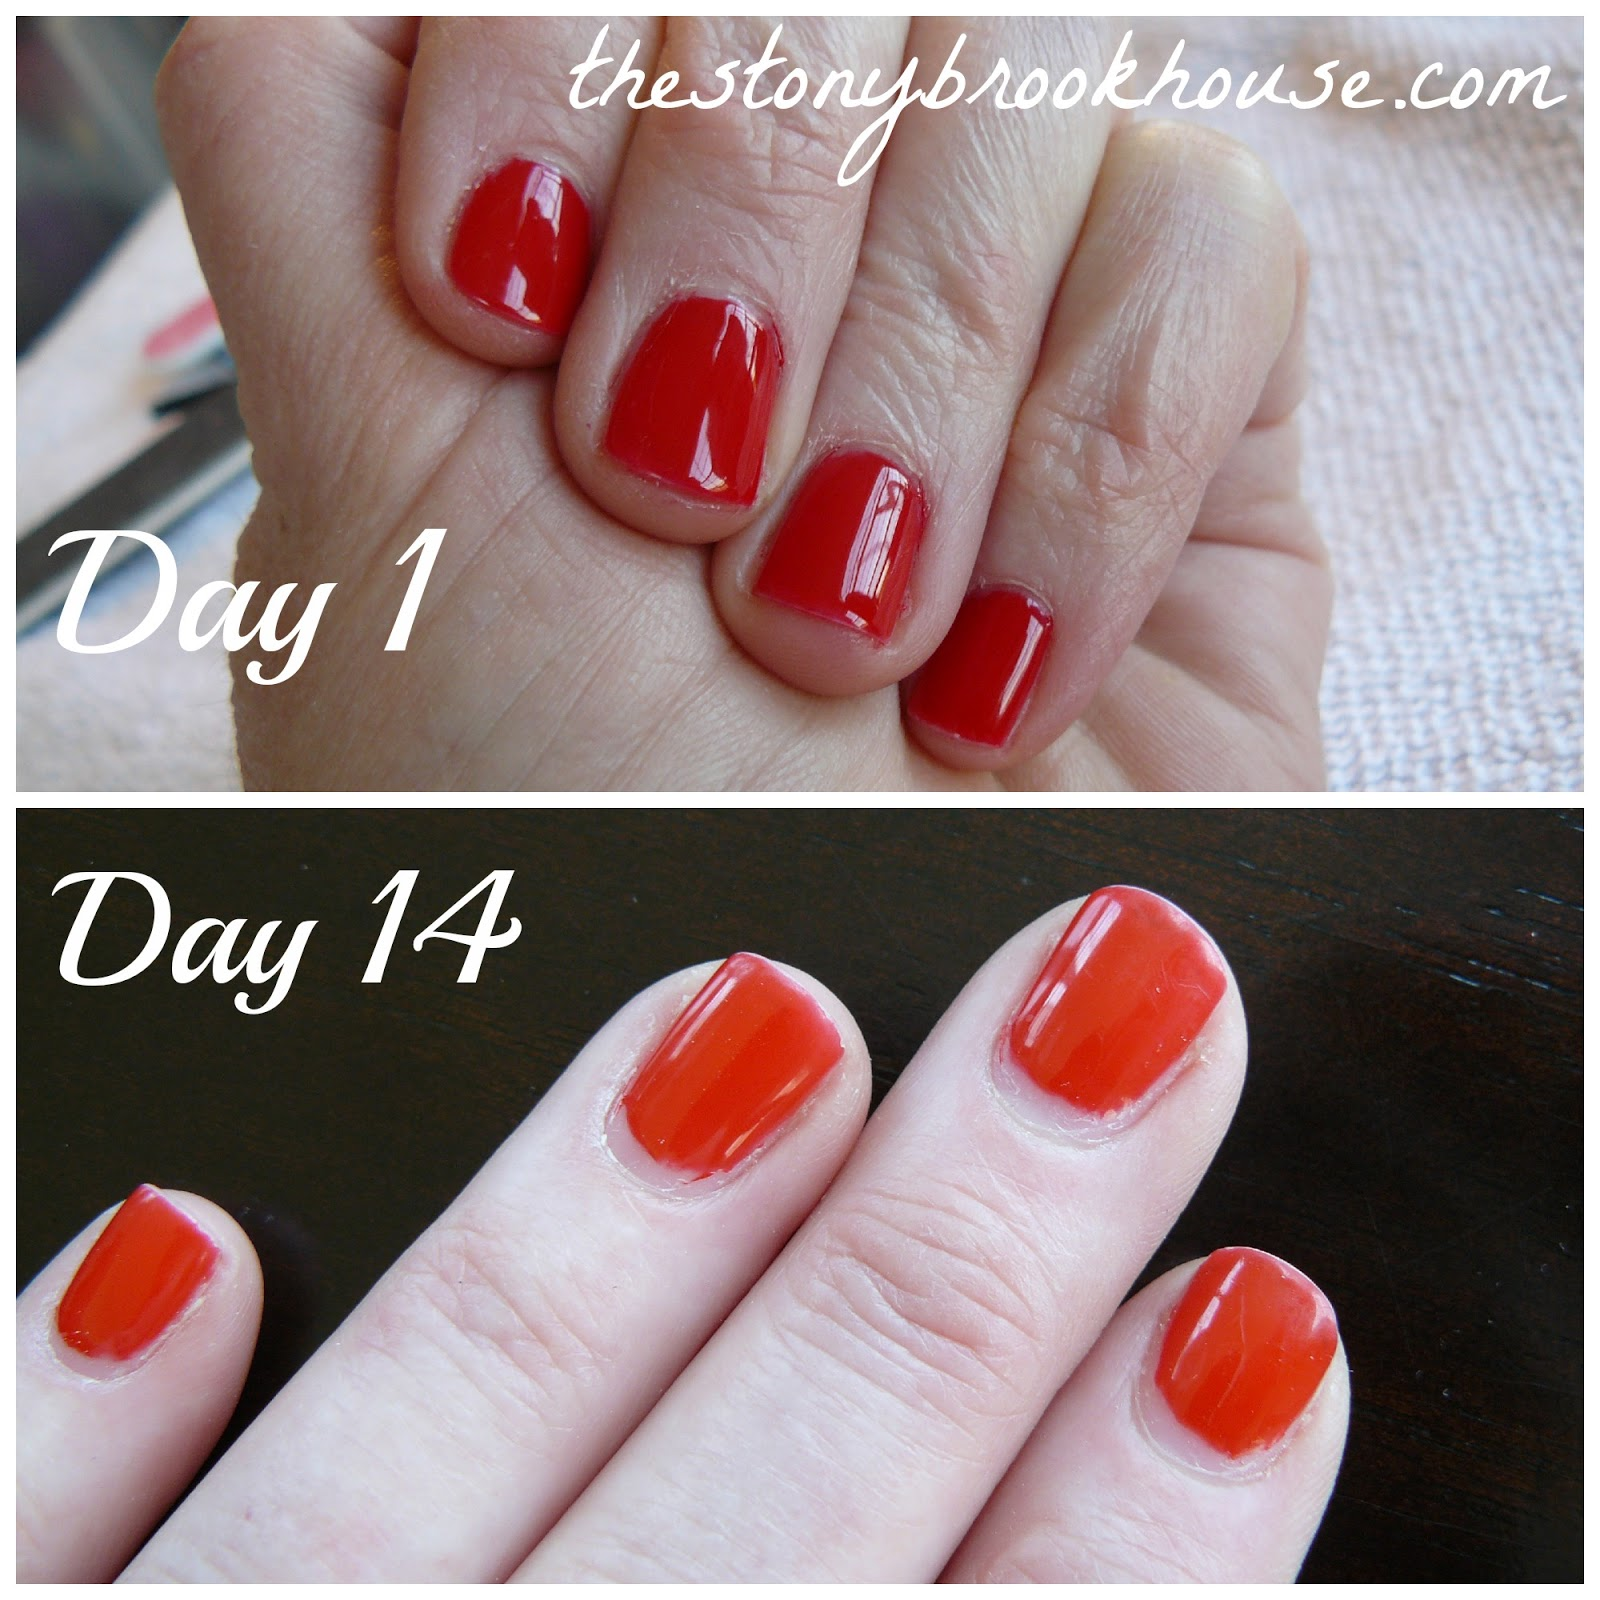 Gel Nails ~ 14 Day Update - The Stonybrook House